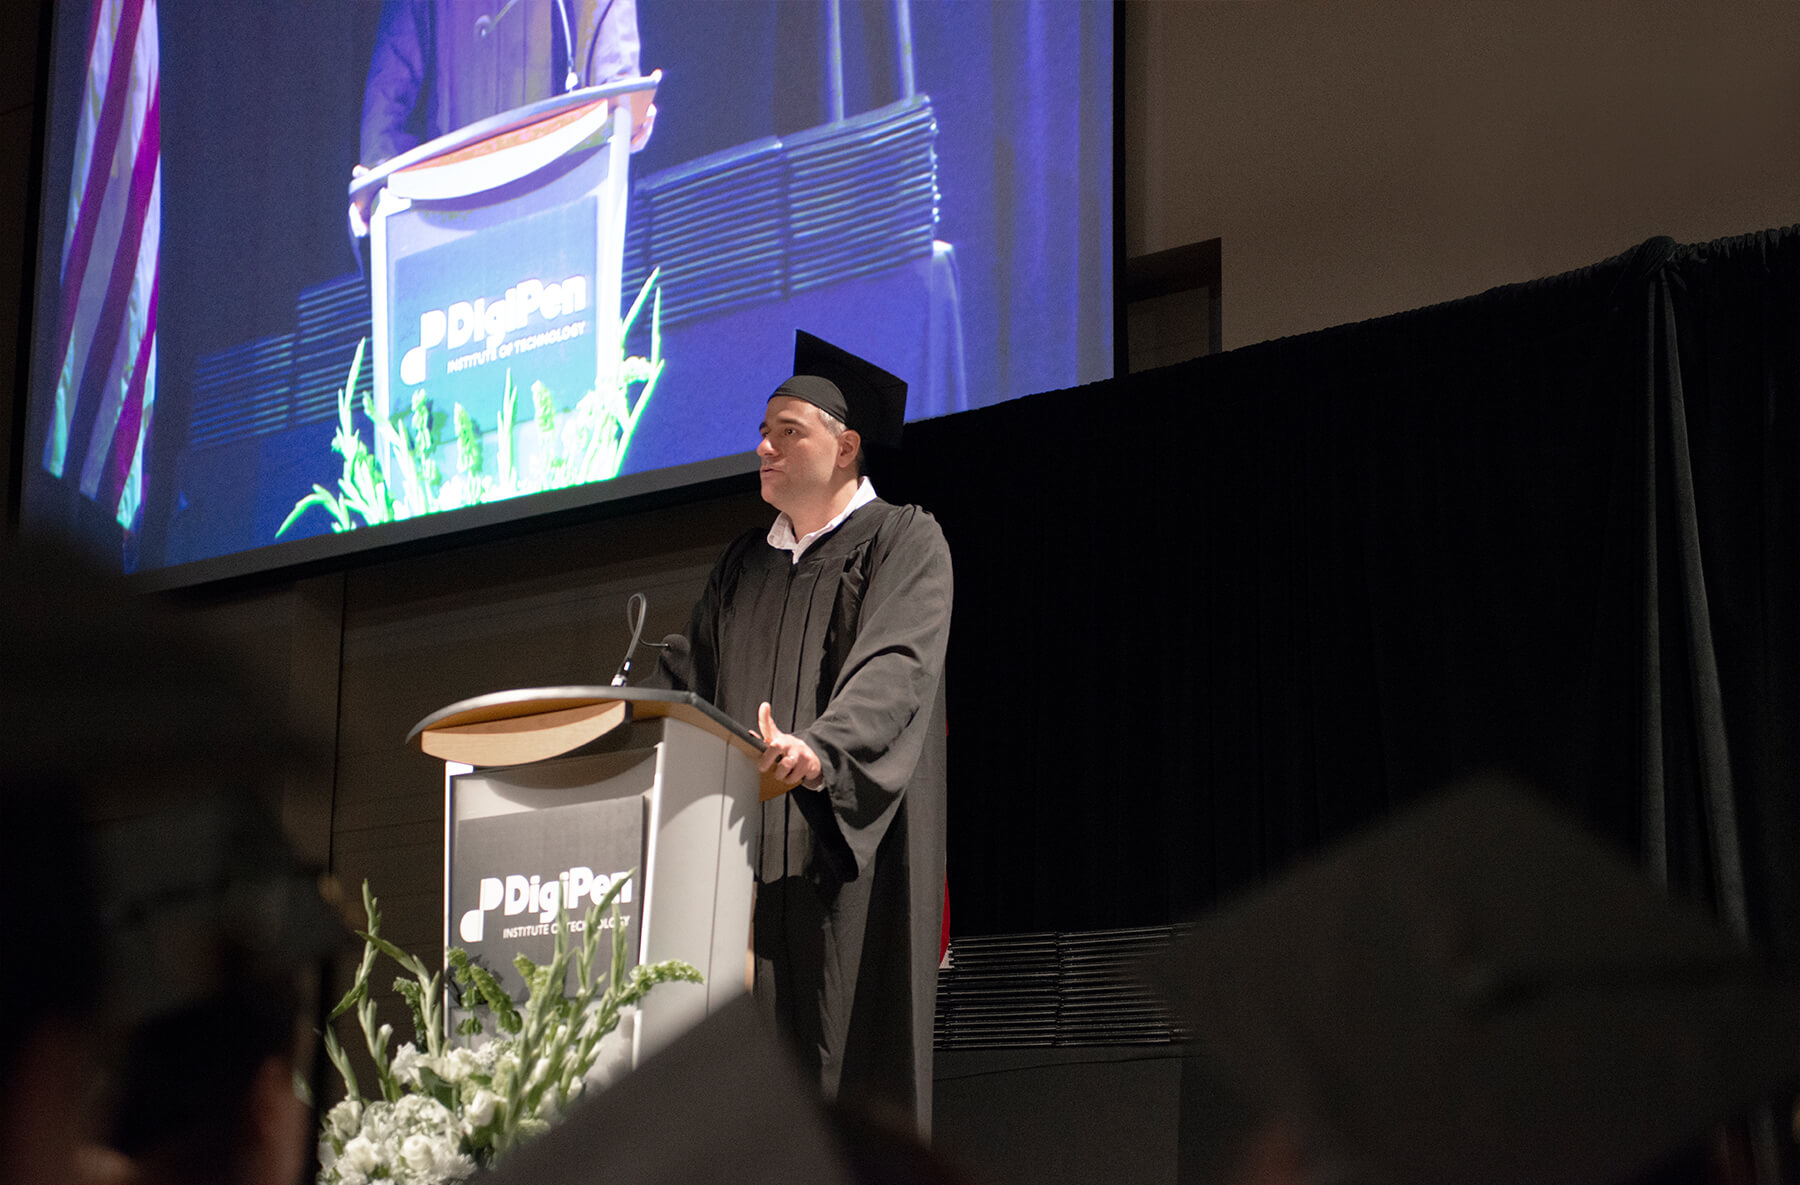 Anthony Saulls delivers a speech on stage at the 2018 DigiPen commencement ceremony.